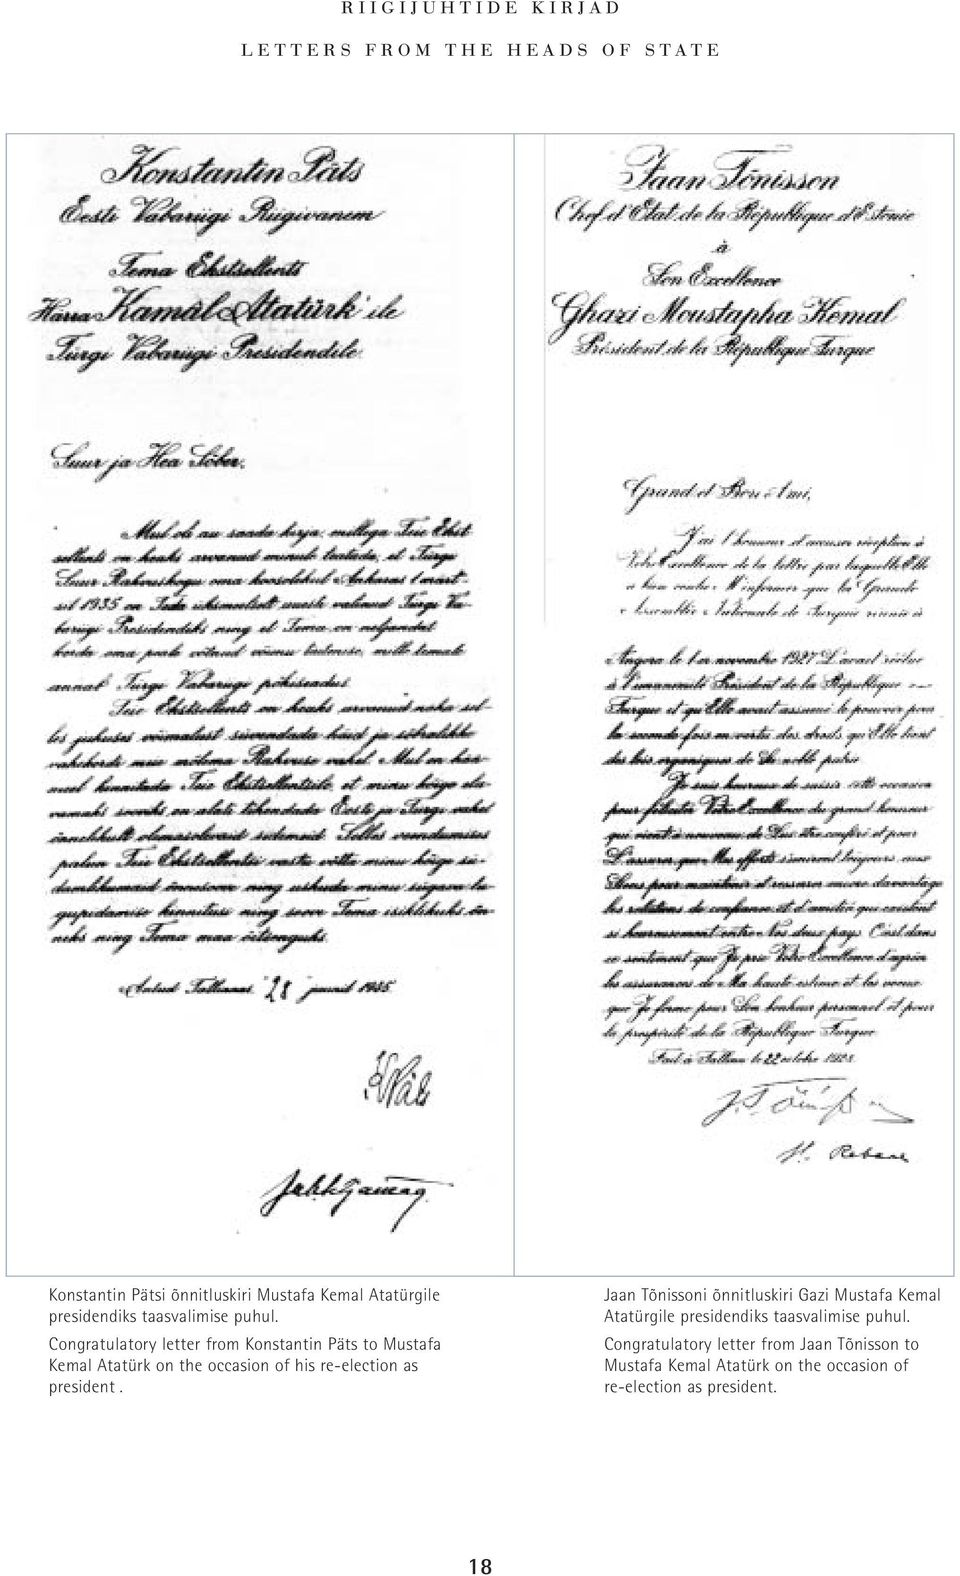 Congratulatory letter from Konstantin Päts to Mustafa Kemal Atatürk on the occasion of his re-election as president.